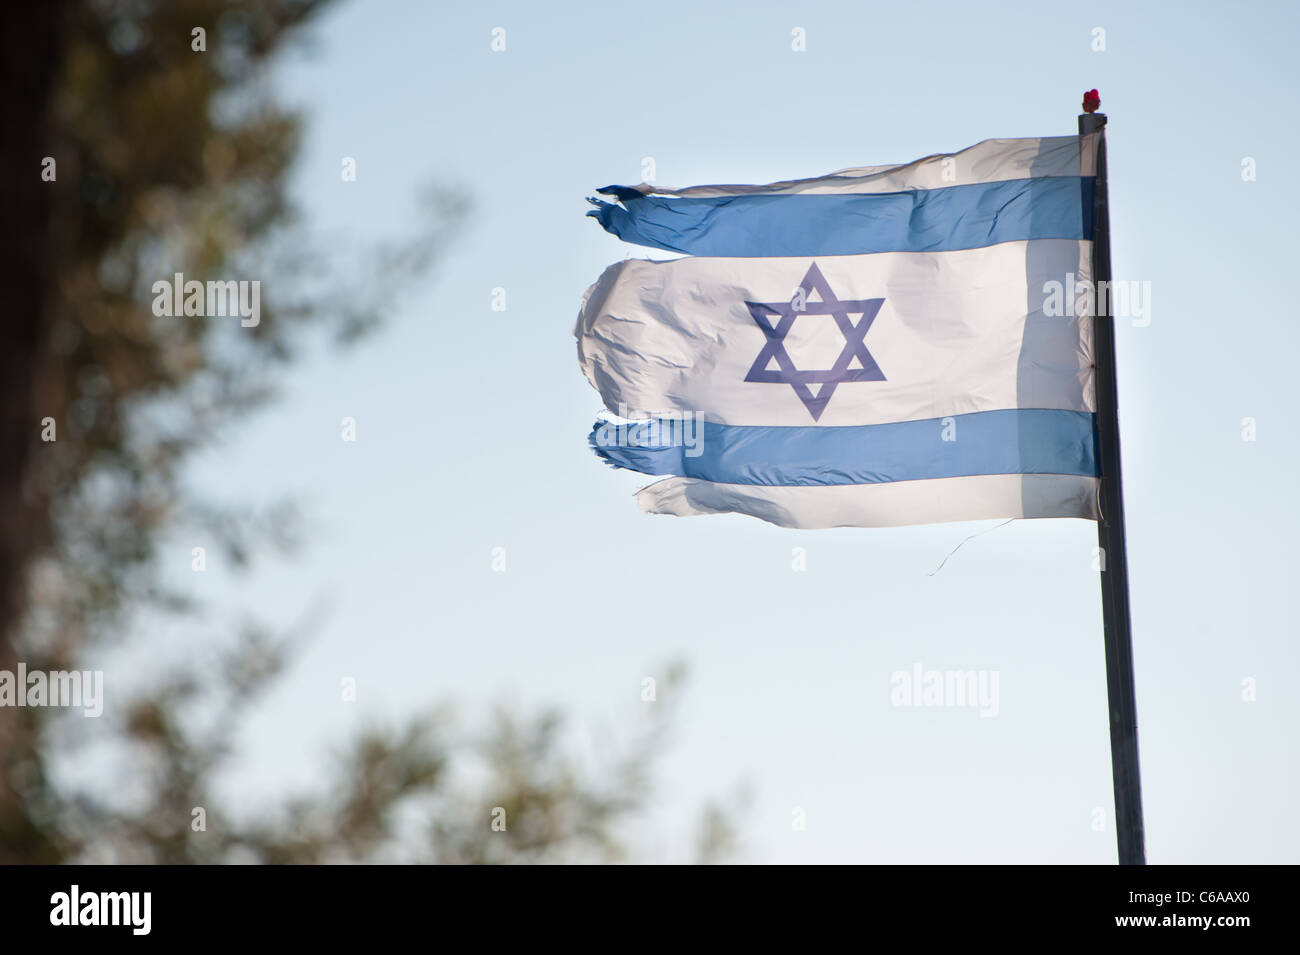 A ragged Israeli flag flies over the Jewish settlement of Beit Hoshen on the Mount of Olives in East Jerusalem. - Stock Image